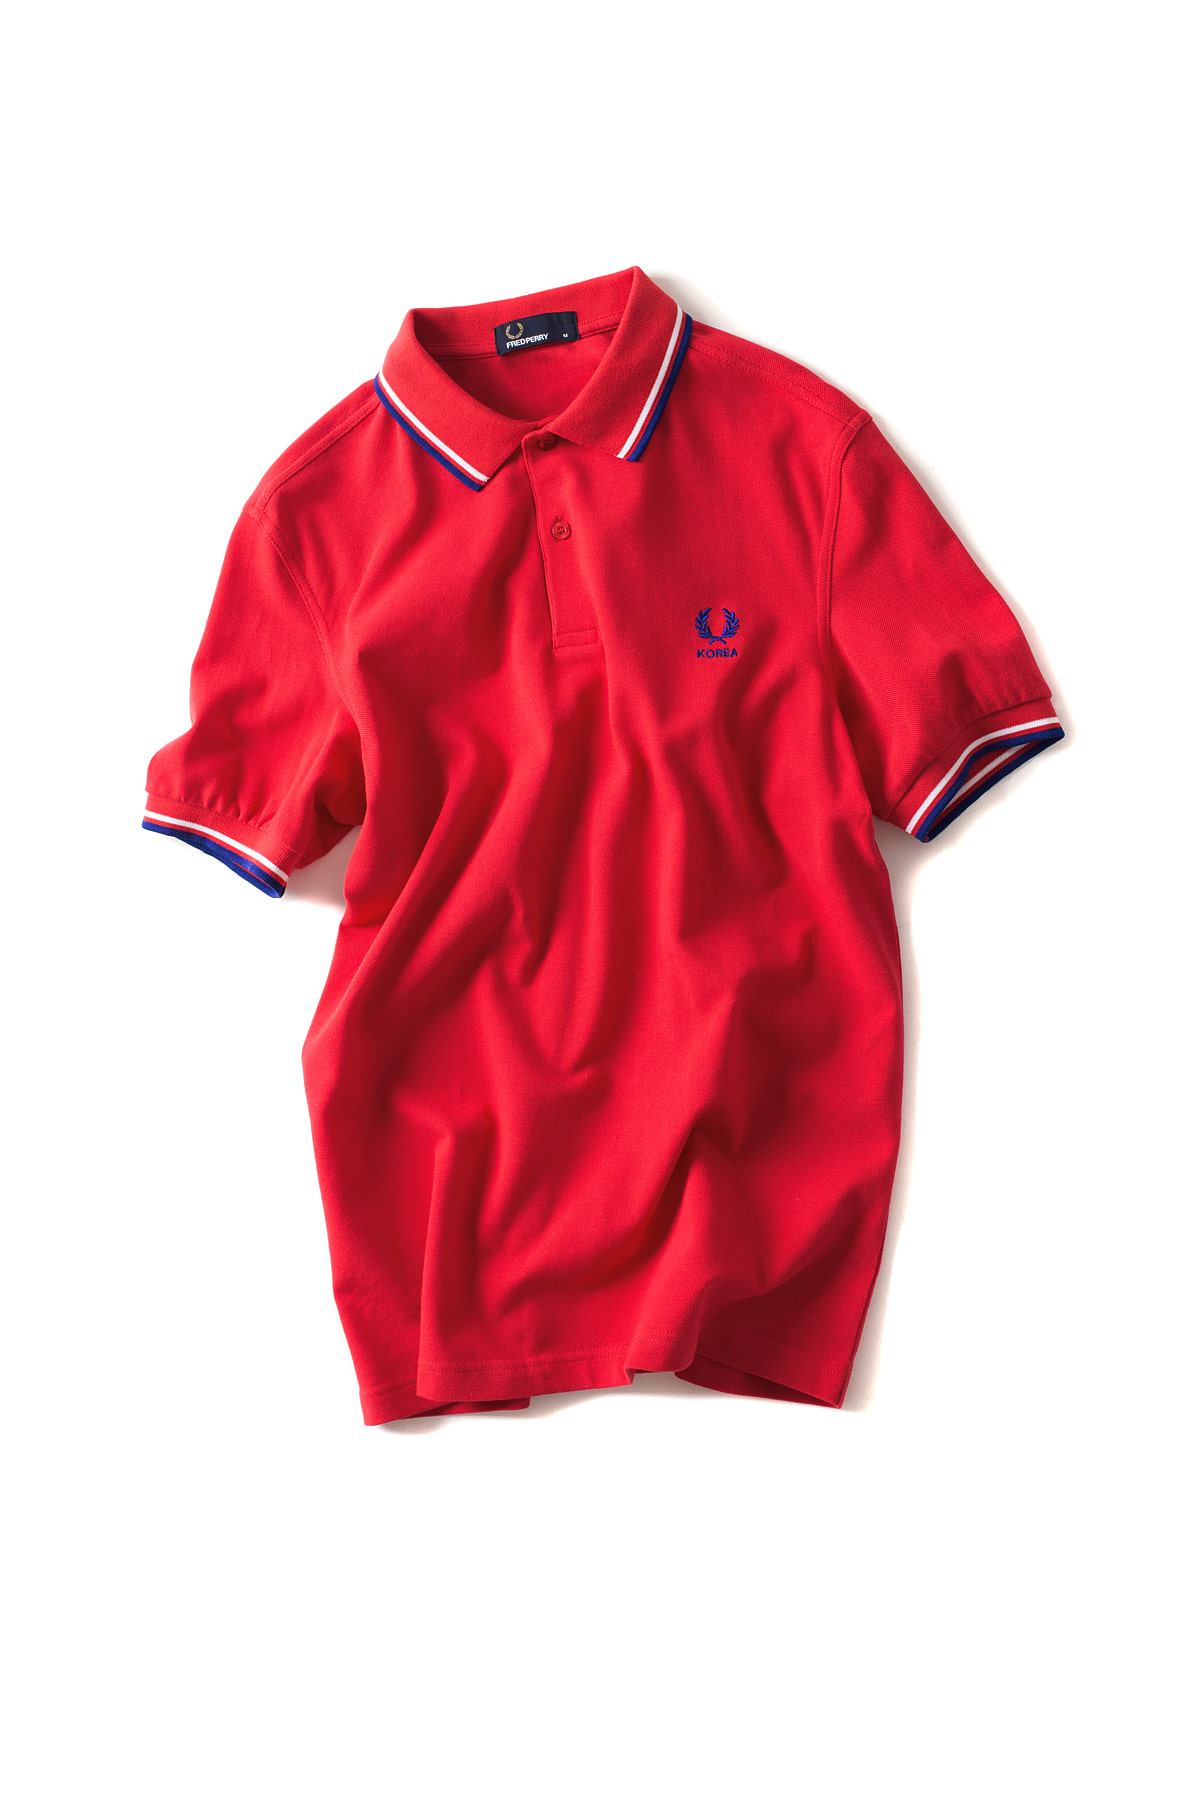 FRED PERRY : The Country Shirt KOREA (Red)